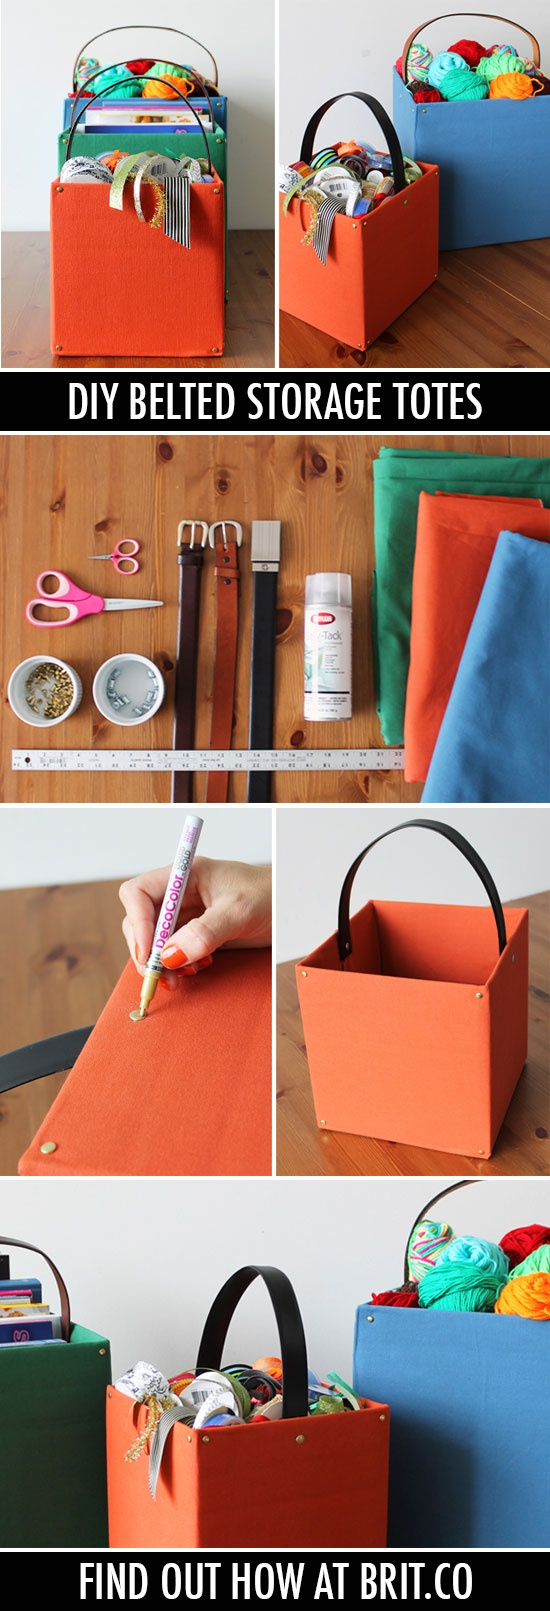 Get Organized with DIY Belted Storage Totes - I like this idea for beside the couch to hold the throw blankets and extra pillows :)